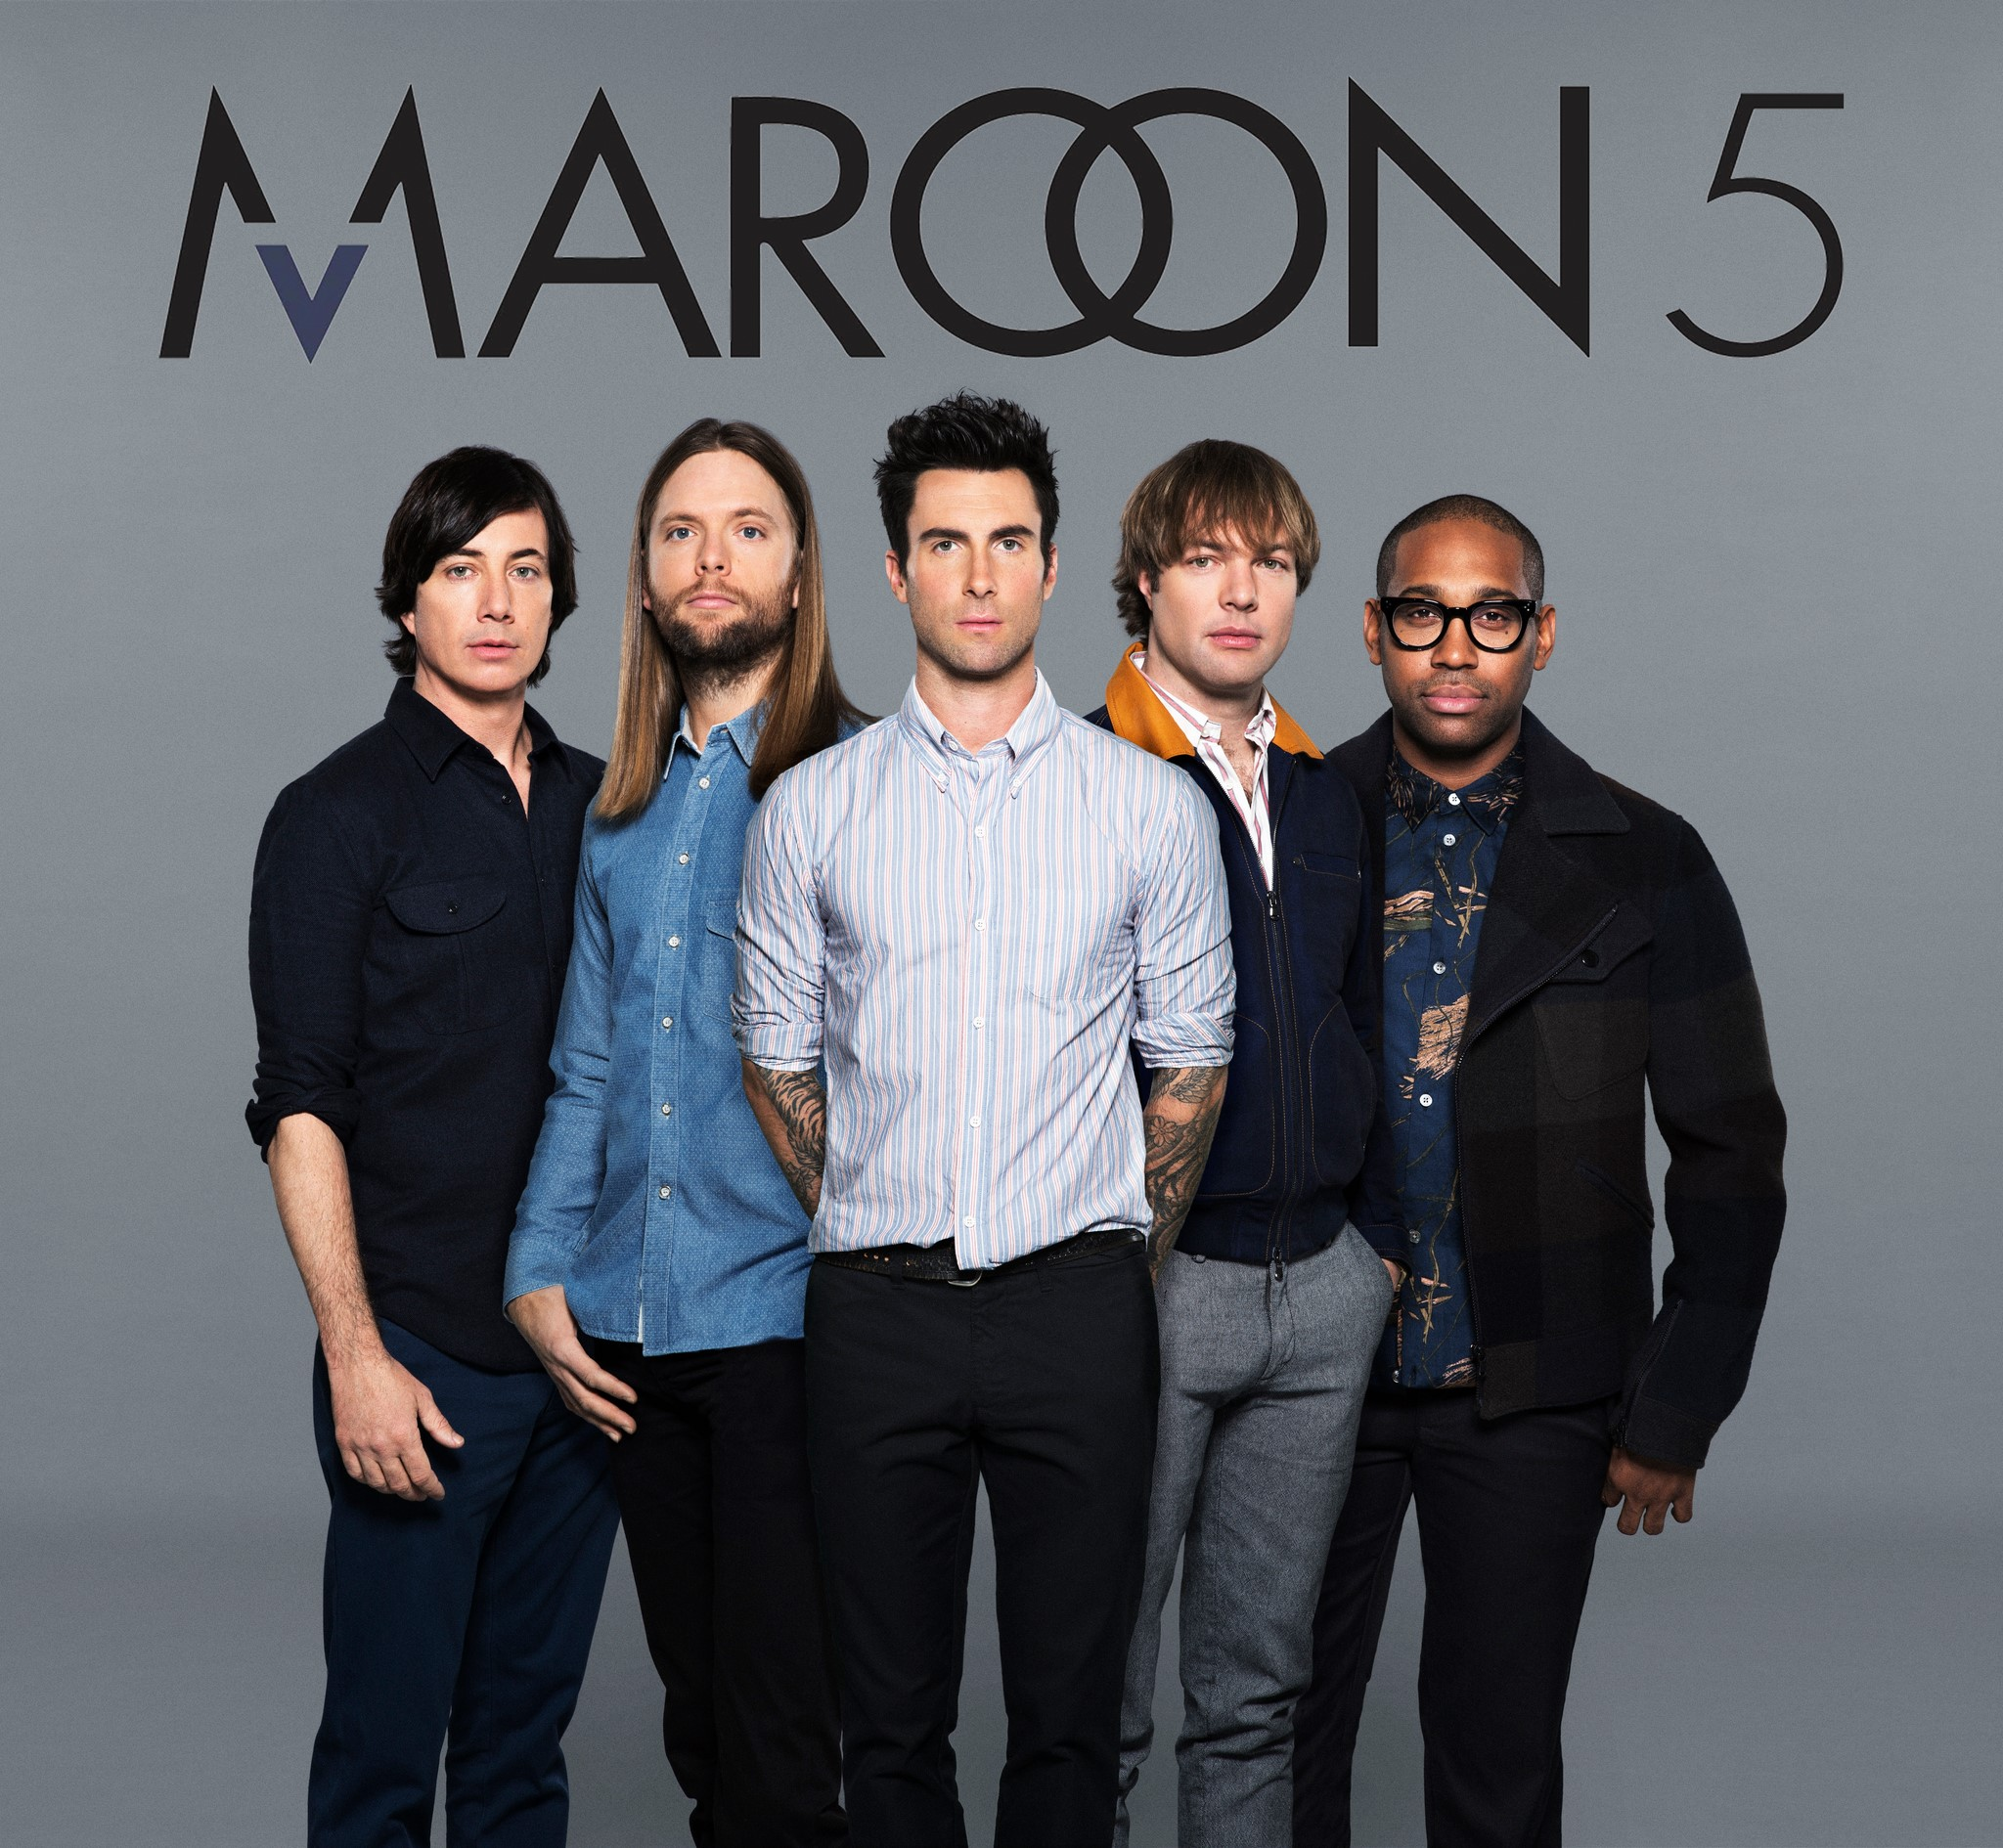 Maroon 5 Sign To Interscope Records; New Album to Drop 9/2